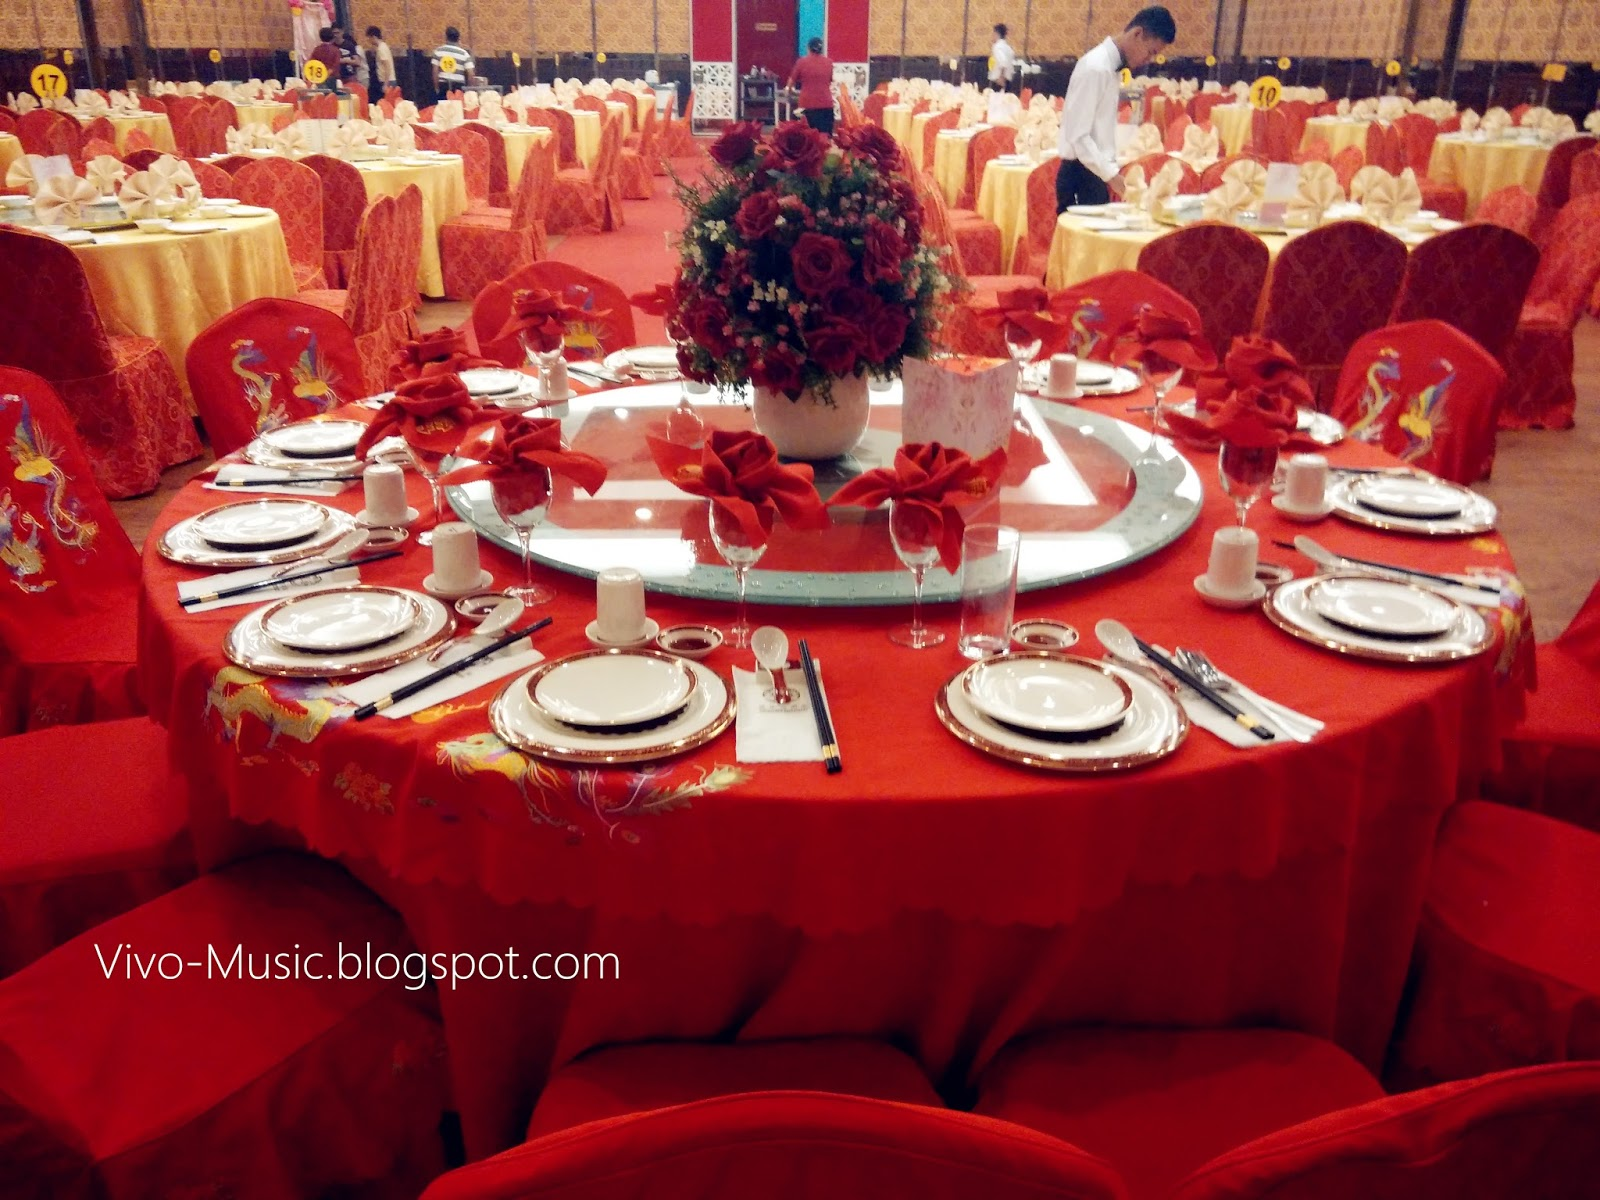 Vivo music live bandkl it is a hotspot for wedding dinner to be held in kepong area junglespirit Images